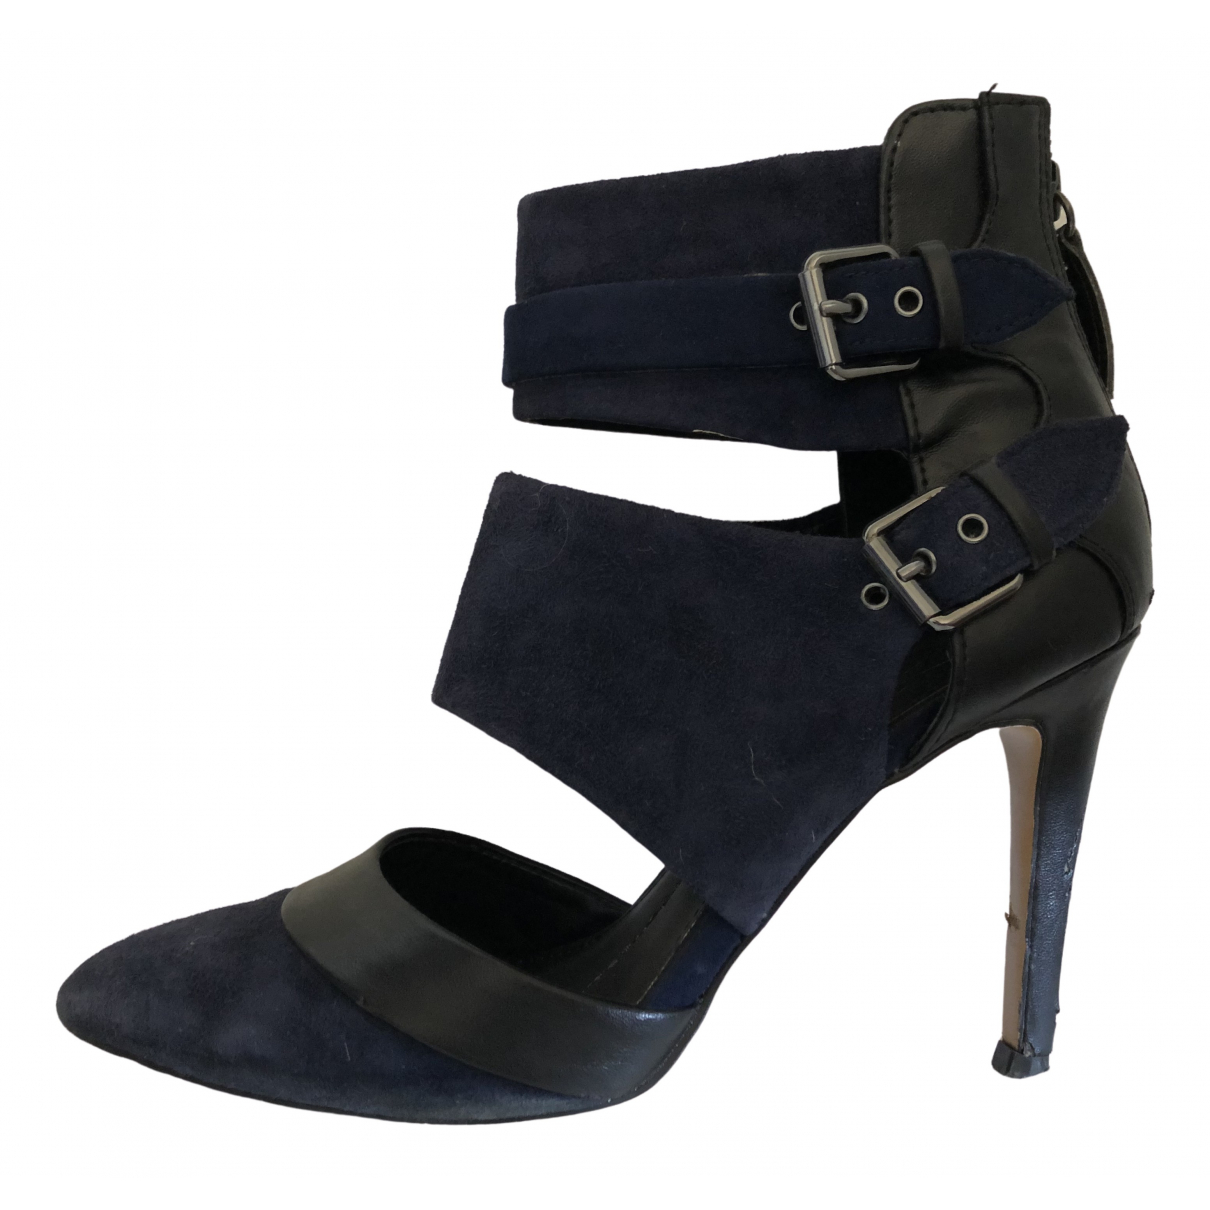 Dolce Vita \N Blue Suede Heels for Women 6.5 US